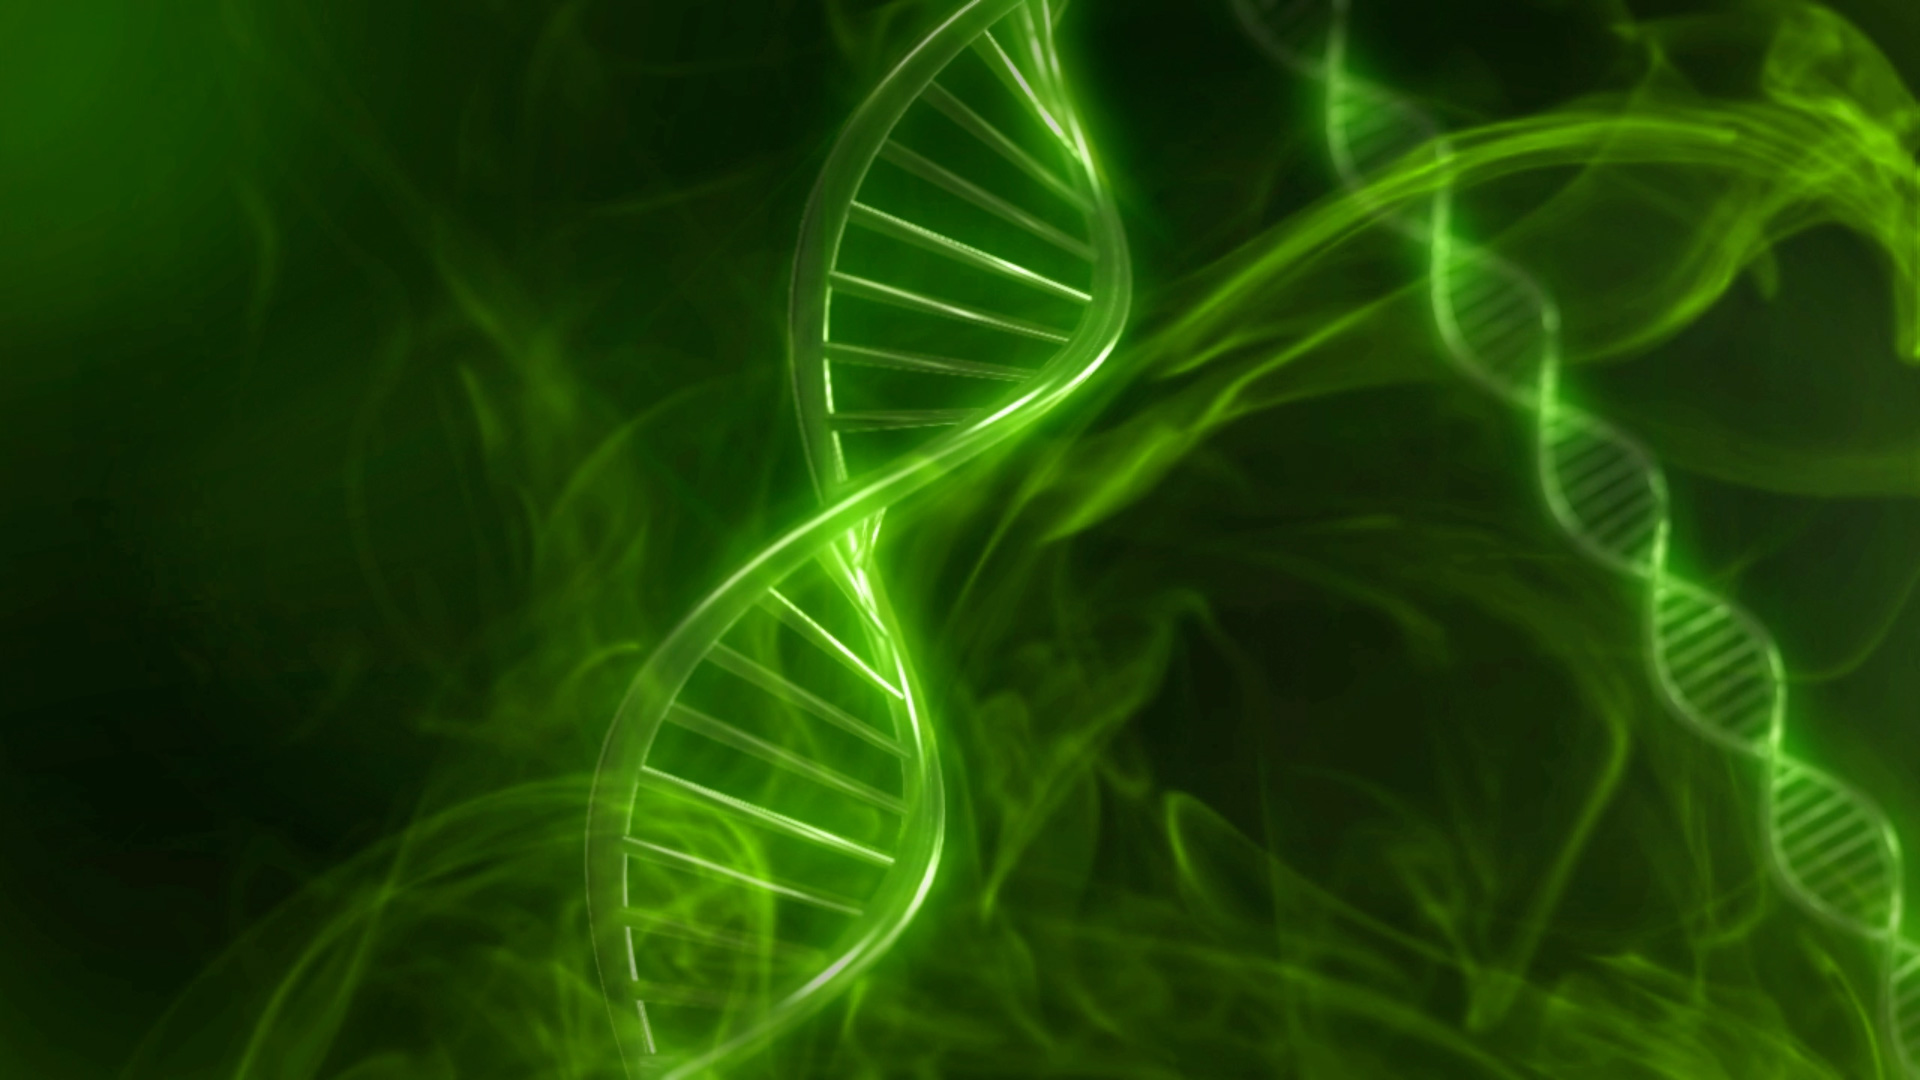 Adn 3d Wallpaper Green Dna Code With Genetic Background In Slow Motion 3d